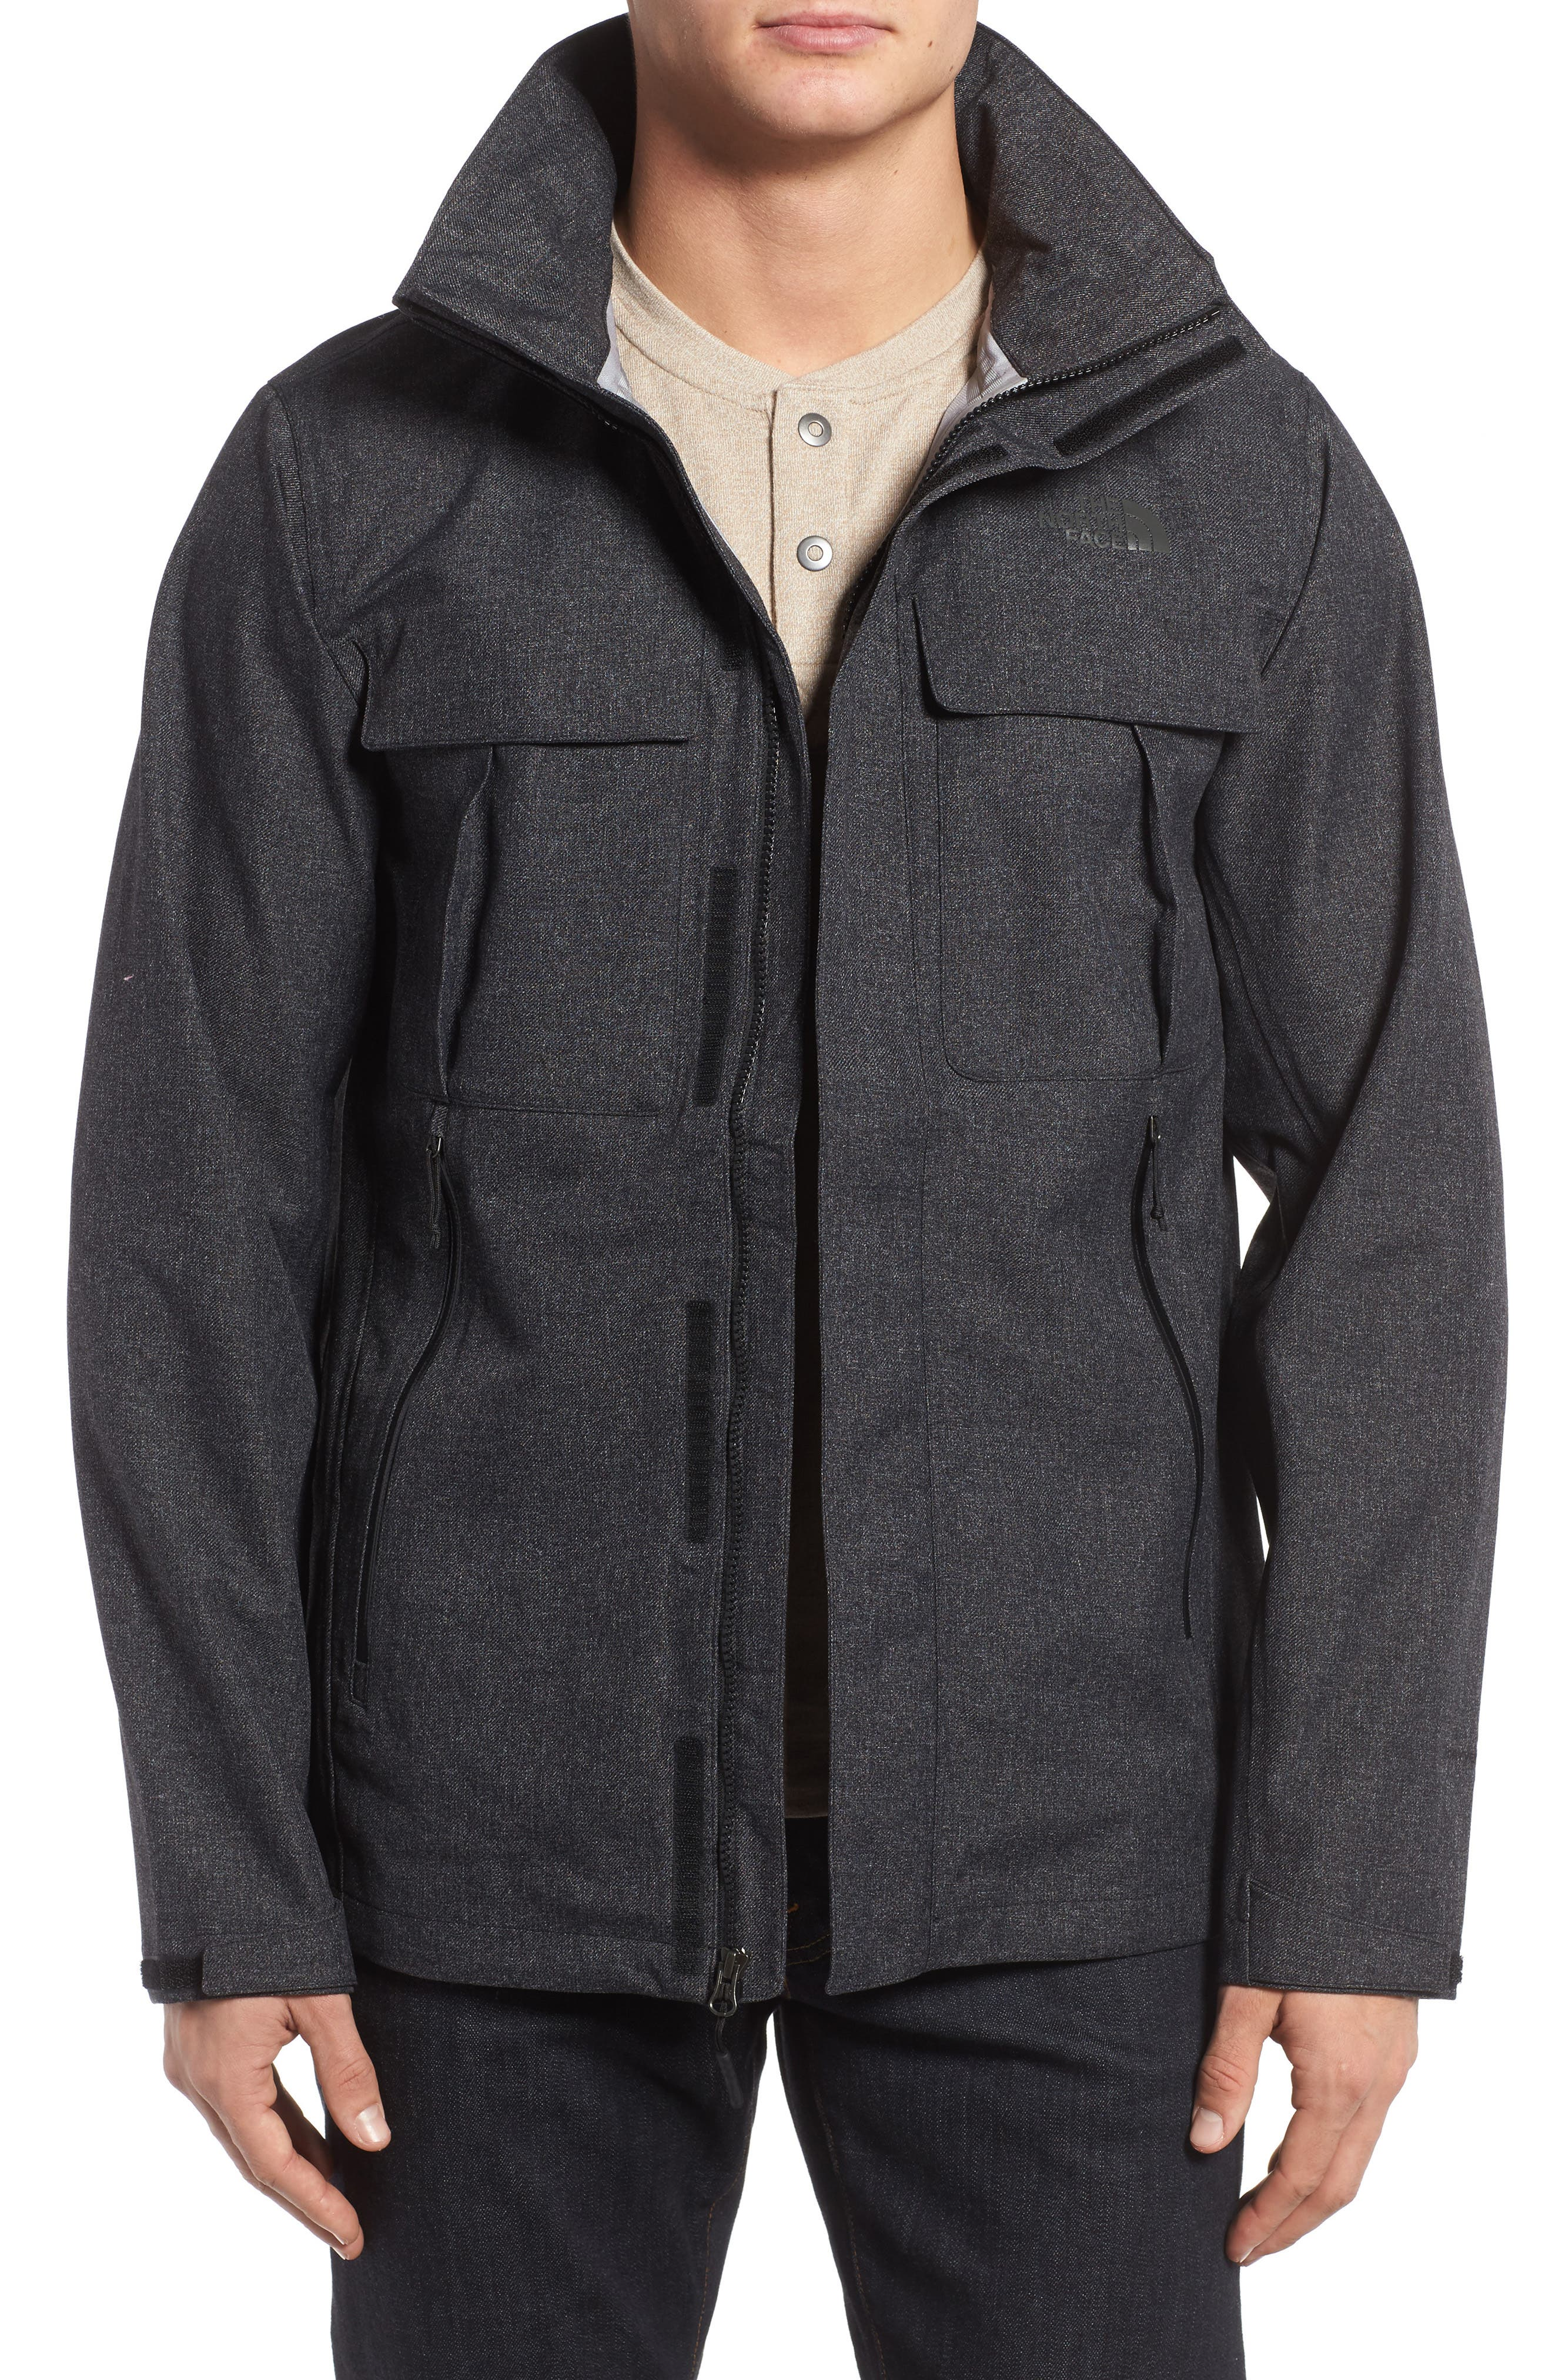 Main Image - The North Face Kassler DryVent Field Jacket